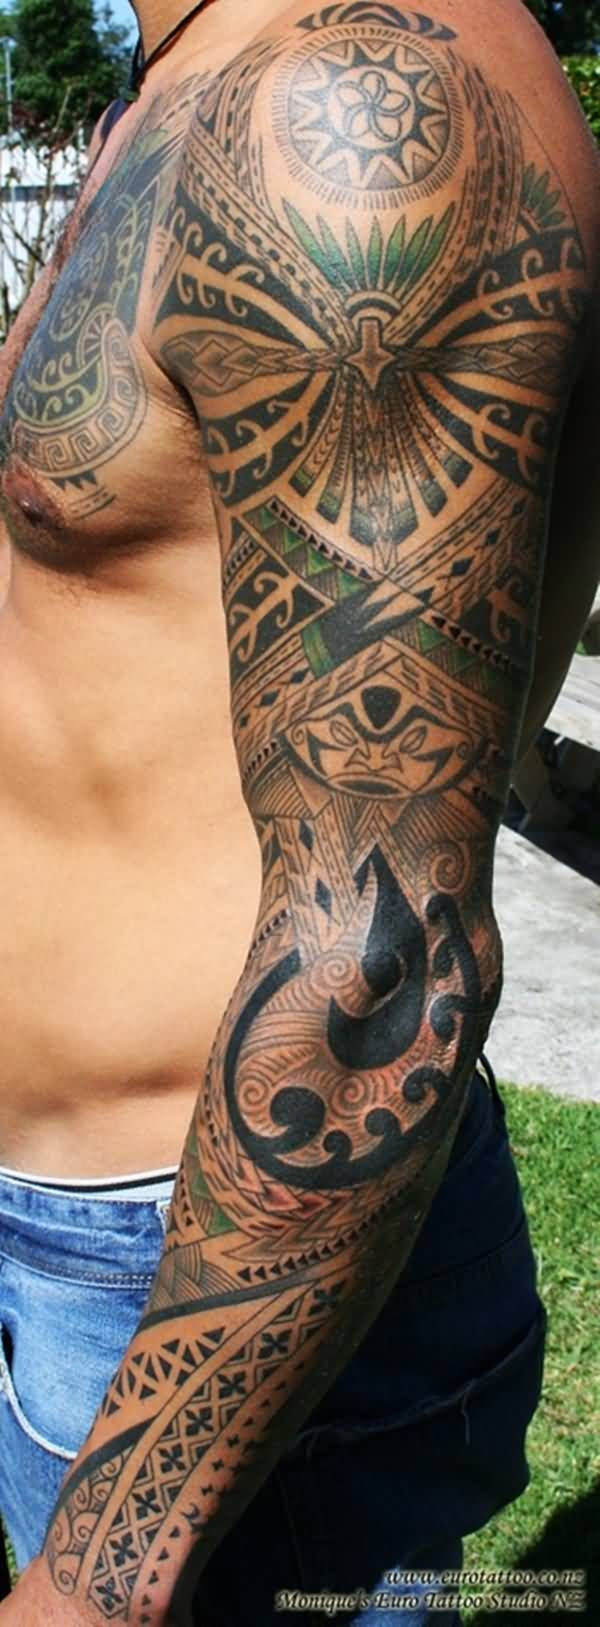 Www Tattooshunter Com Wp Content Uploads 2015 11 Ideas And Designs